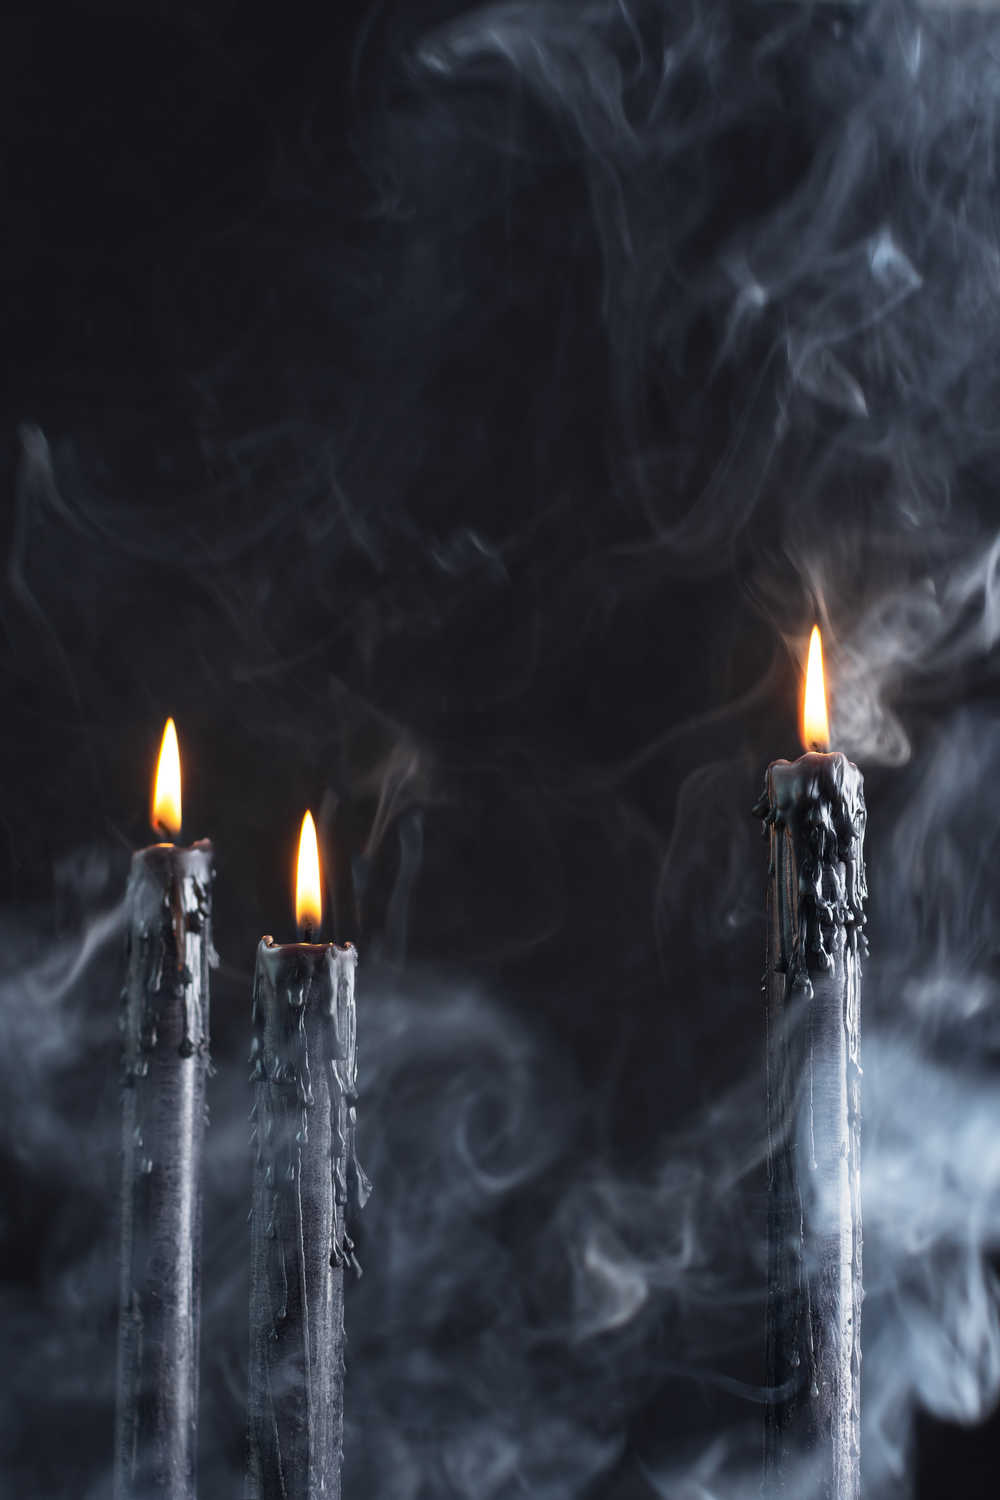 Three black candles lit against a black background with smoke and fog in the foreground.